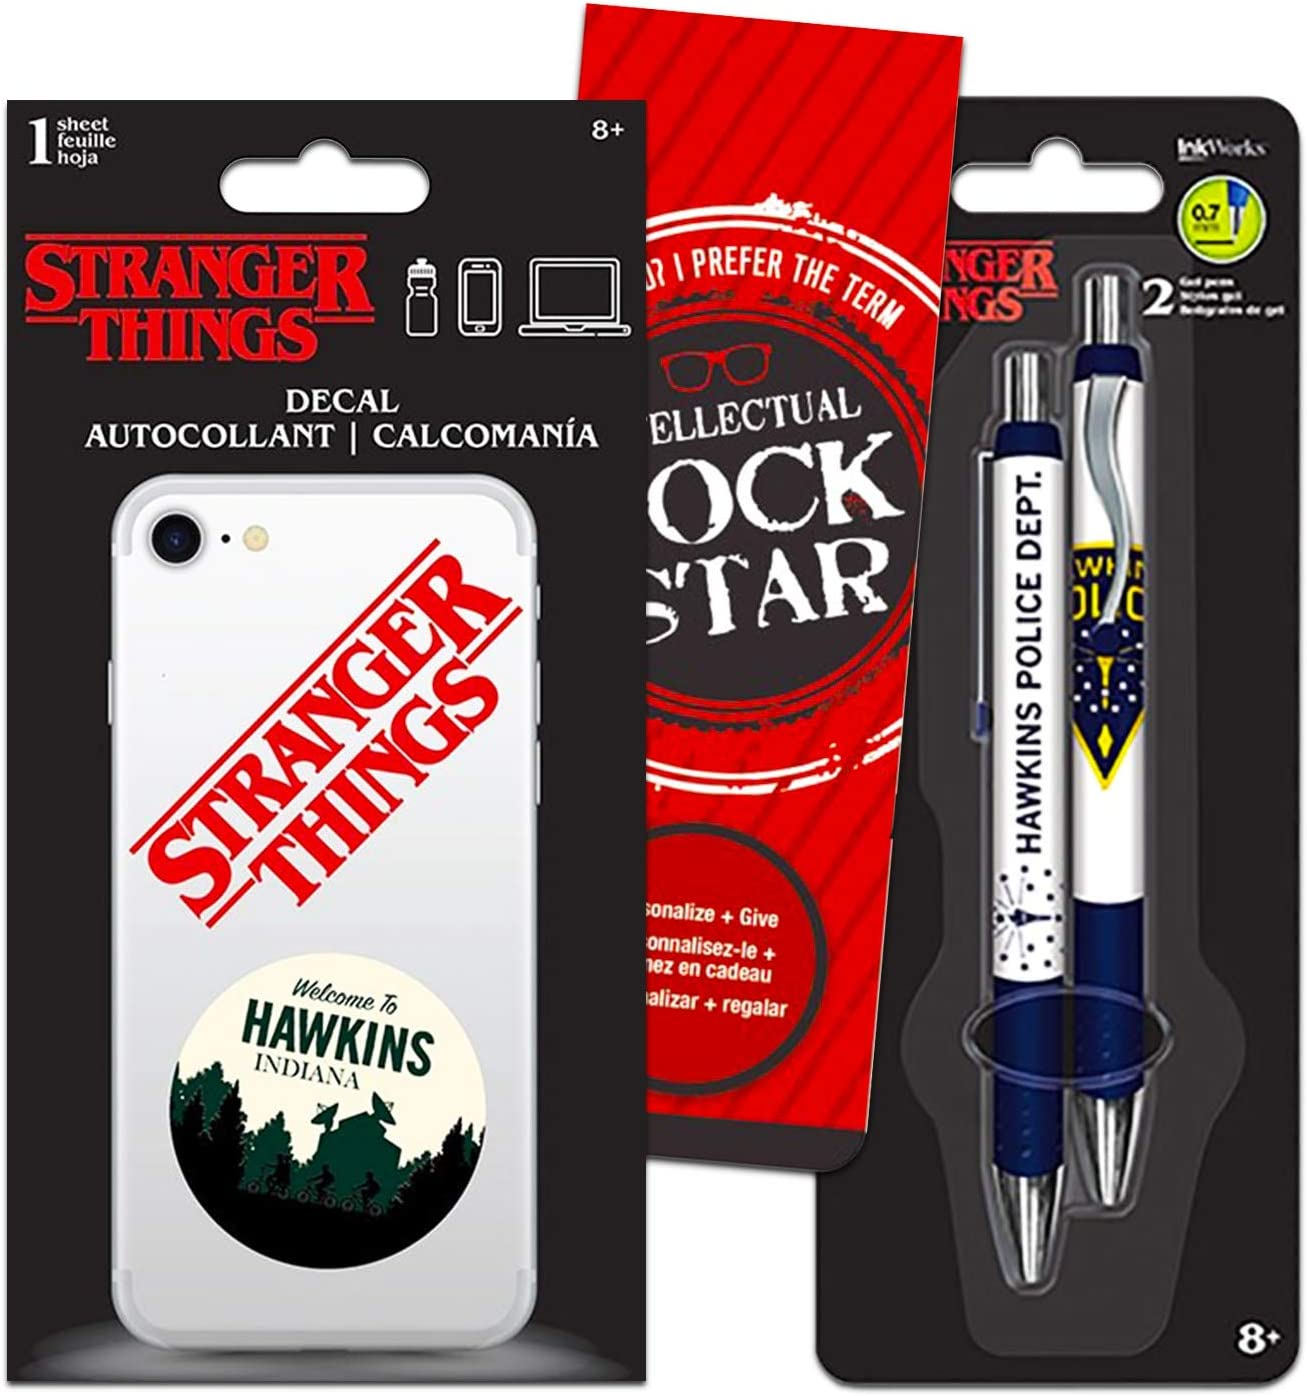 Stranger Things Pens and Stranger Things Decal Stickers for Phone Laptop Bundle Set with Bookmark (Stranger Things School Office Supplies)